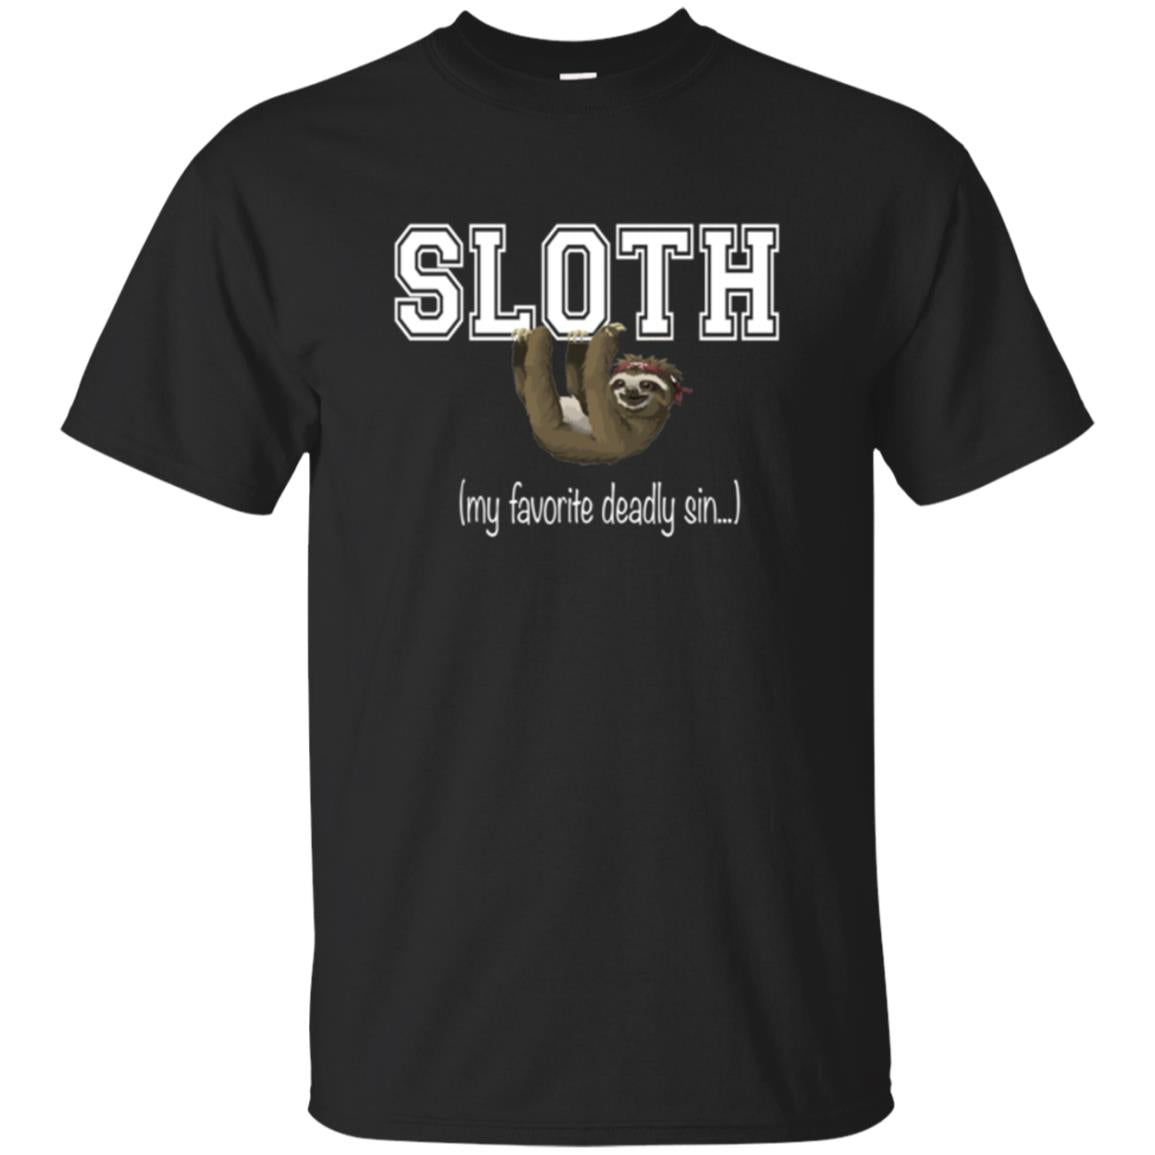 Funny Sloth Shirt - Favorite Deadly Sin T-Shirt